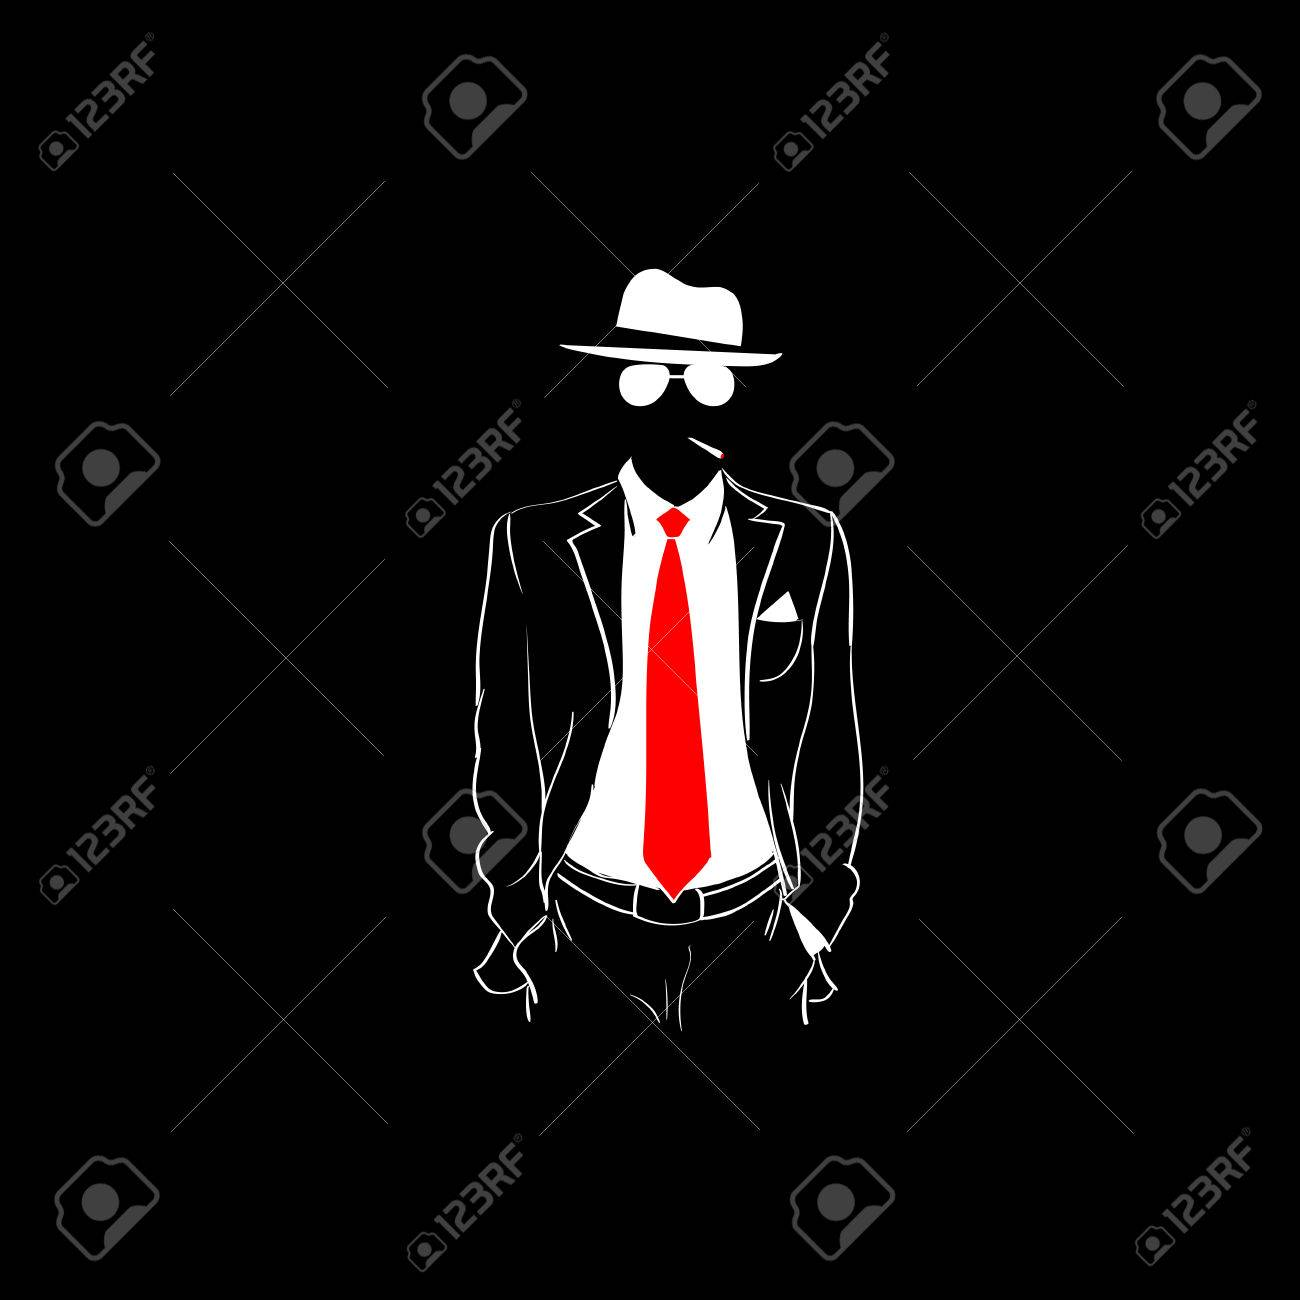 Man Silhouette Suit Red Tie Wear Glasses White Hat Black Background..